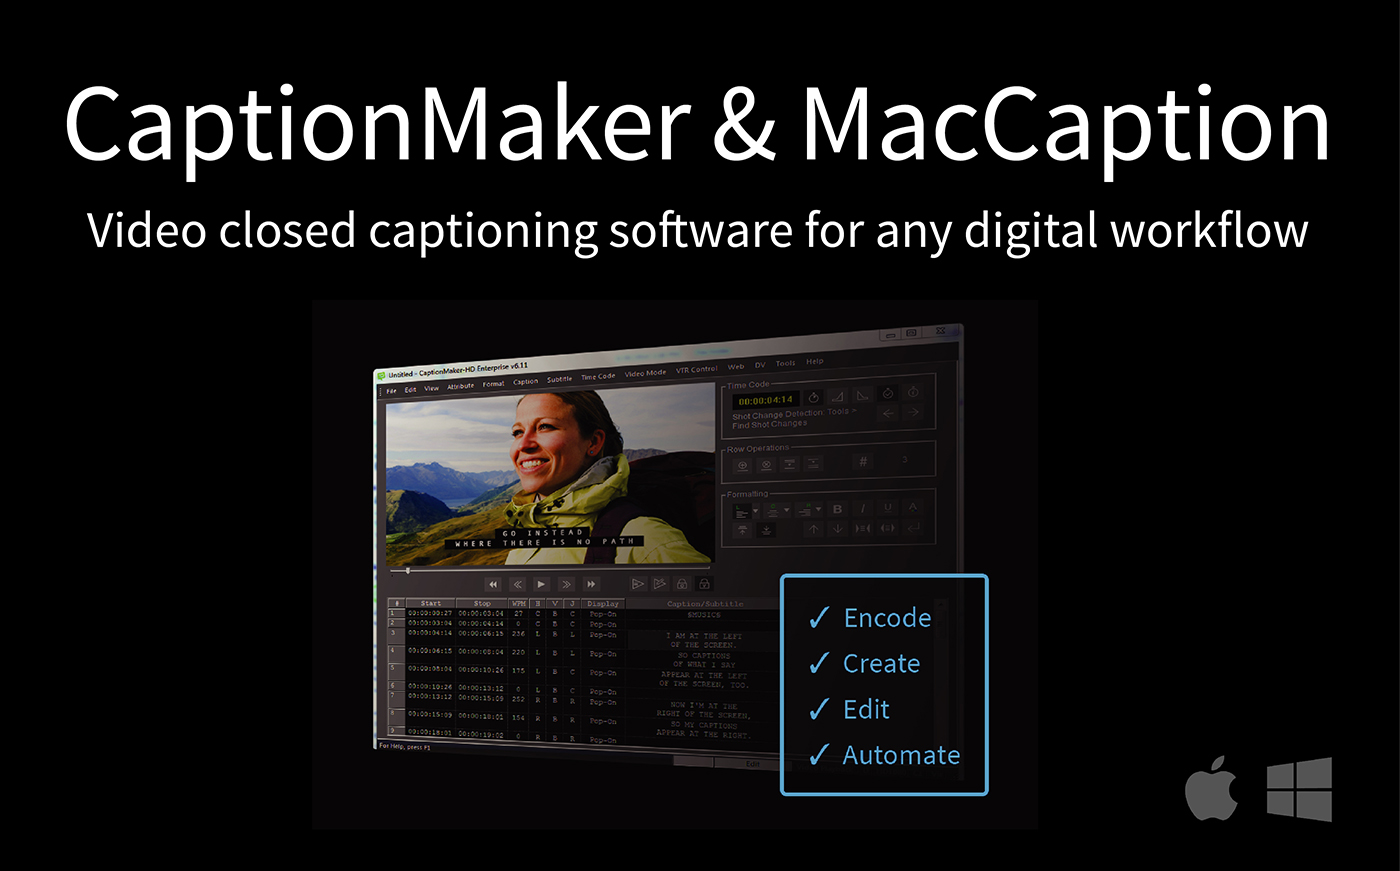 WWW_TELESTREAM_NET_telestream enterprise captionmaker - enterprise edition